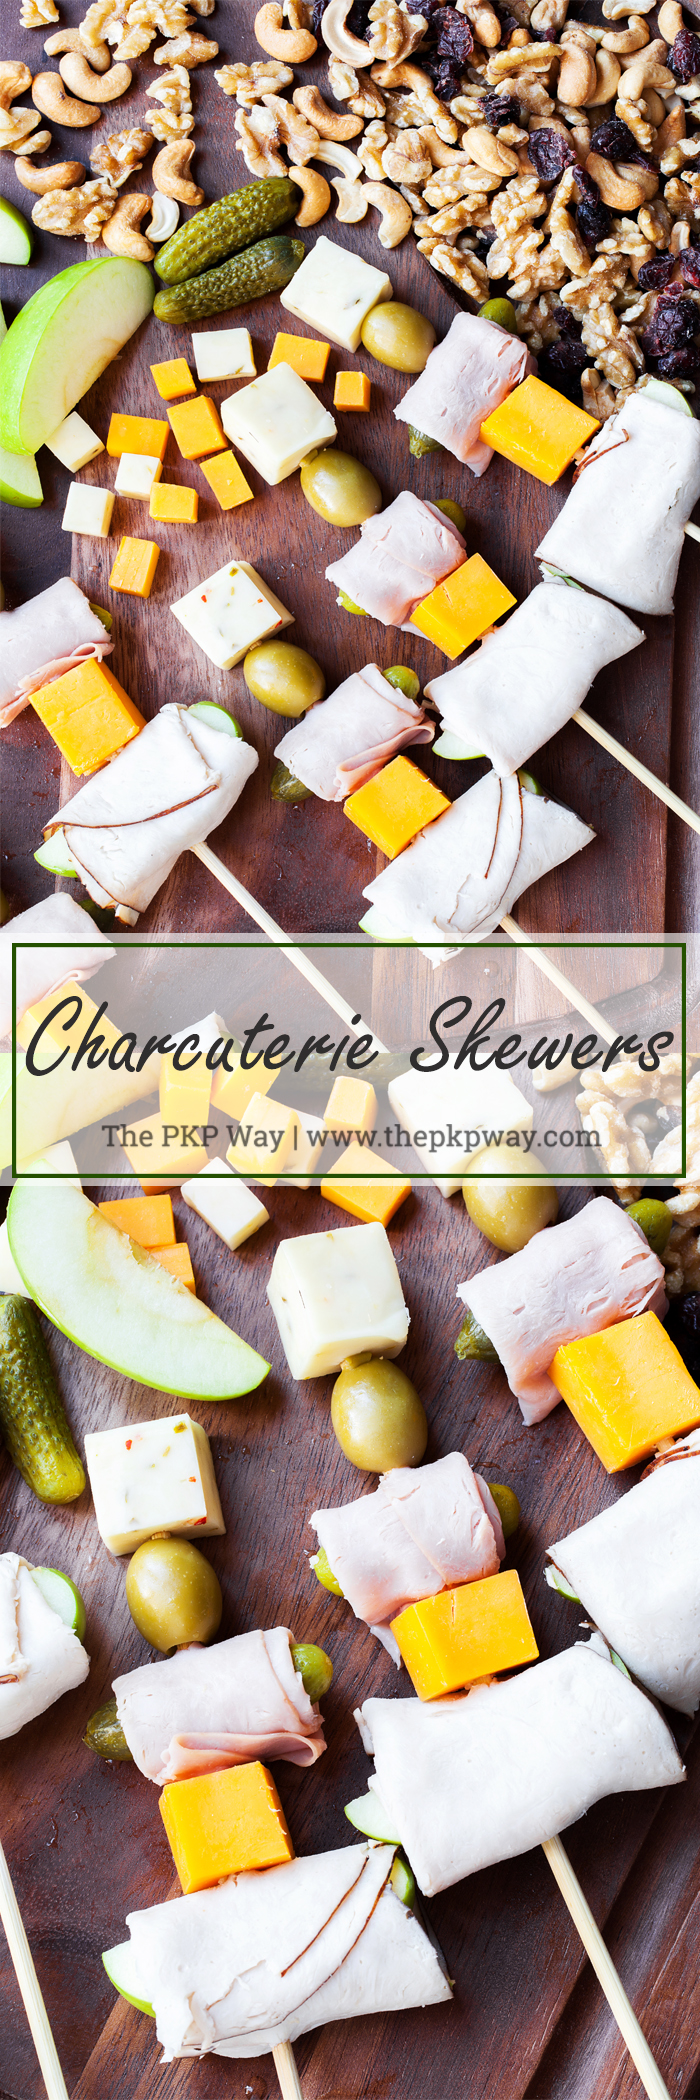 Easily entertain with these completely customizable and delicious Charcuterie Skewers.